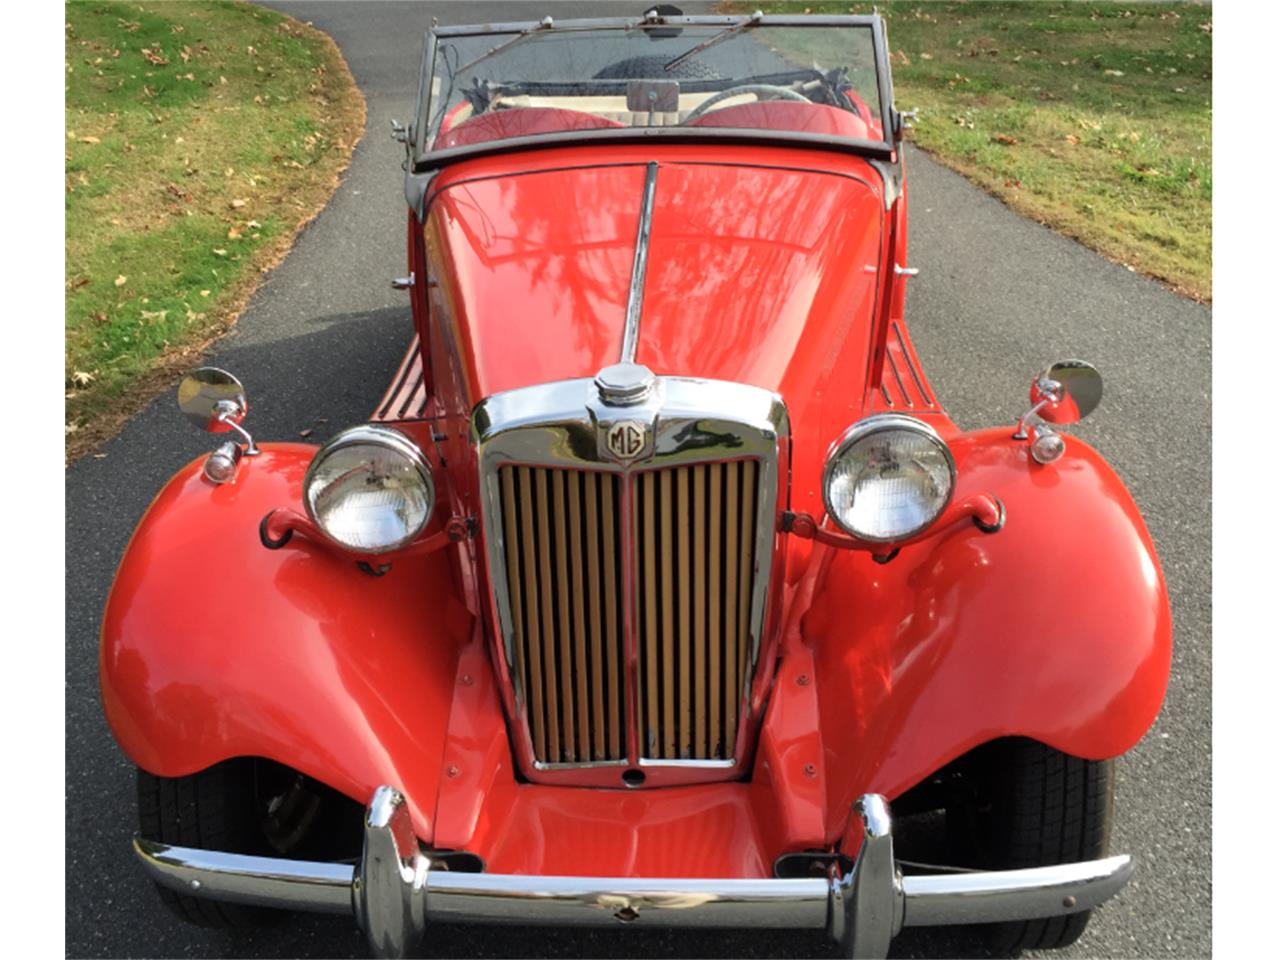 Large Picture of Classic '53 MG TD located in Maryland - $30,000.00 Offered by a Private Seller - K5KO